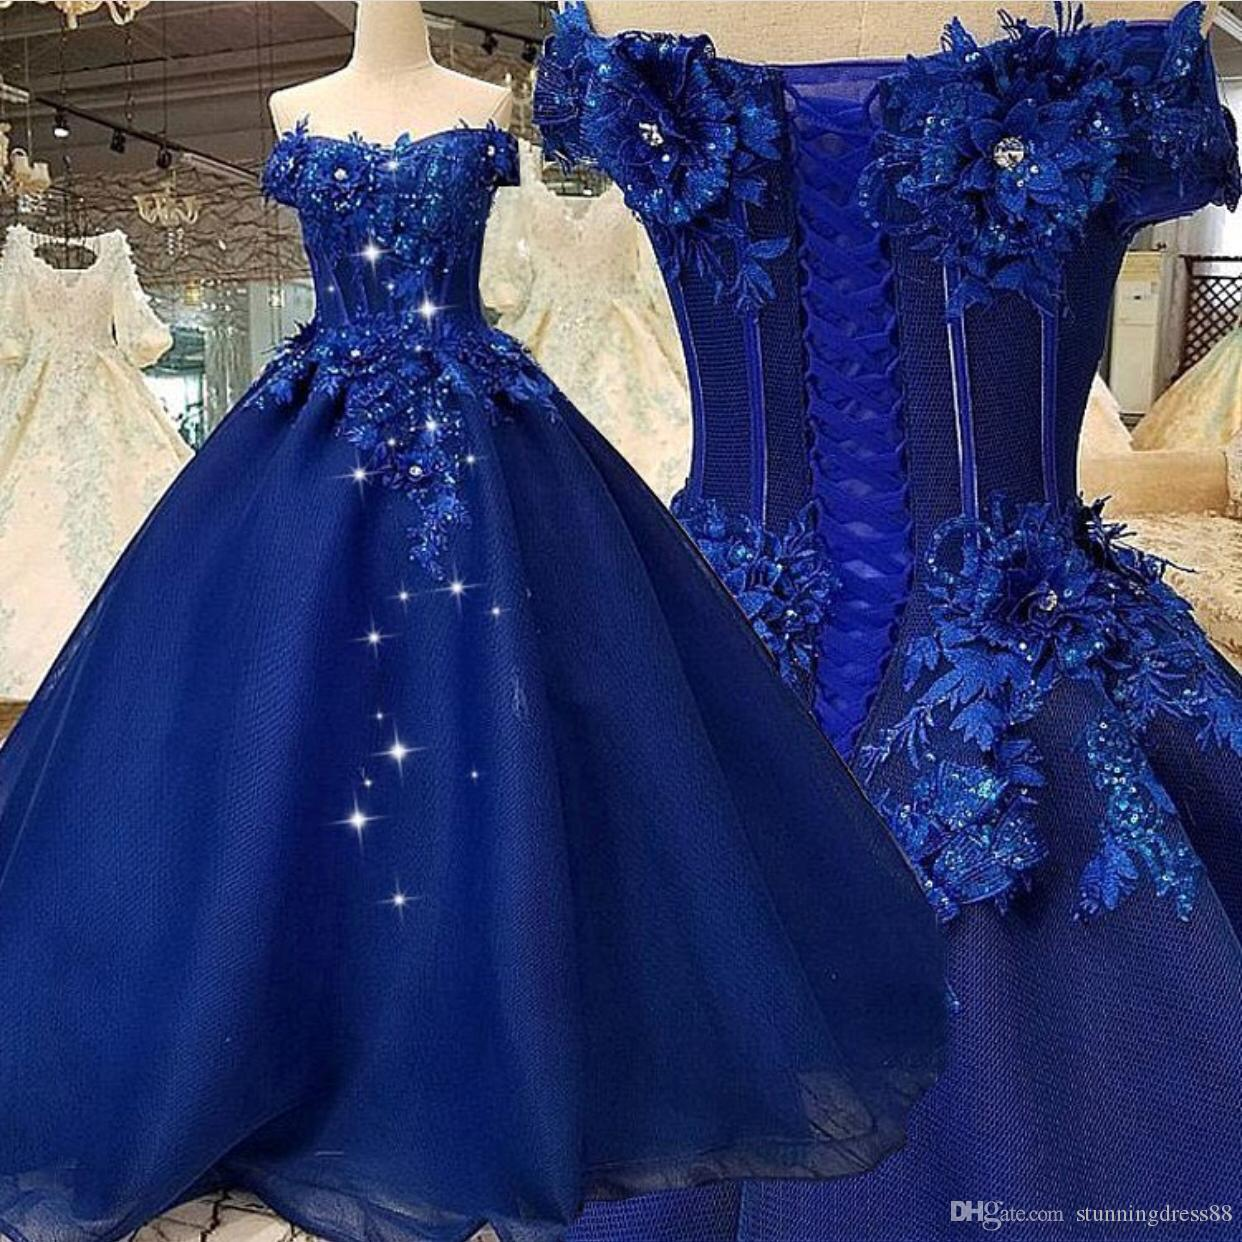 Most Beautiful Prom Dresses Ball Gown: Royal Blue 2020 Quinceanera Ball Gown Prom Dresses Long 3D